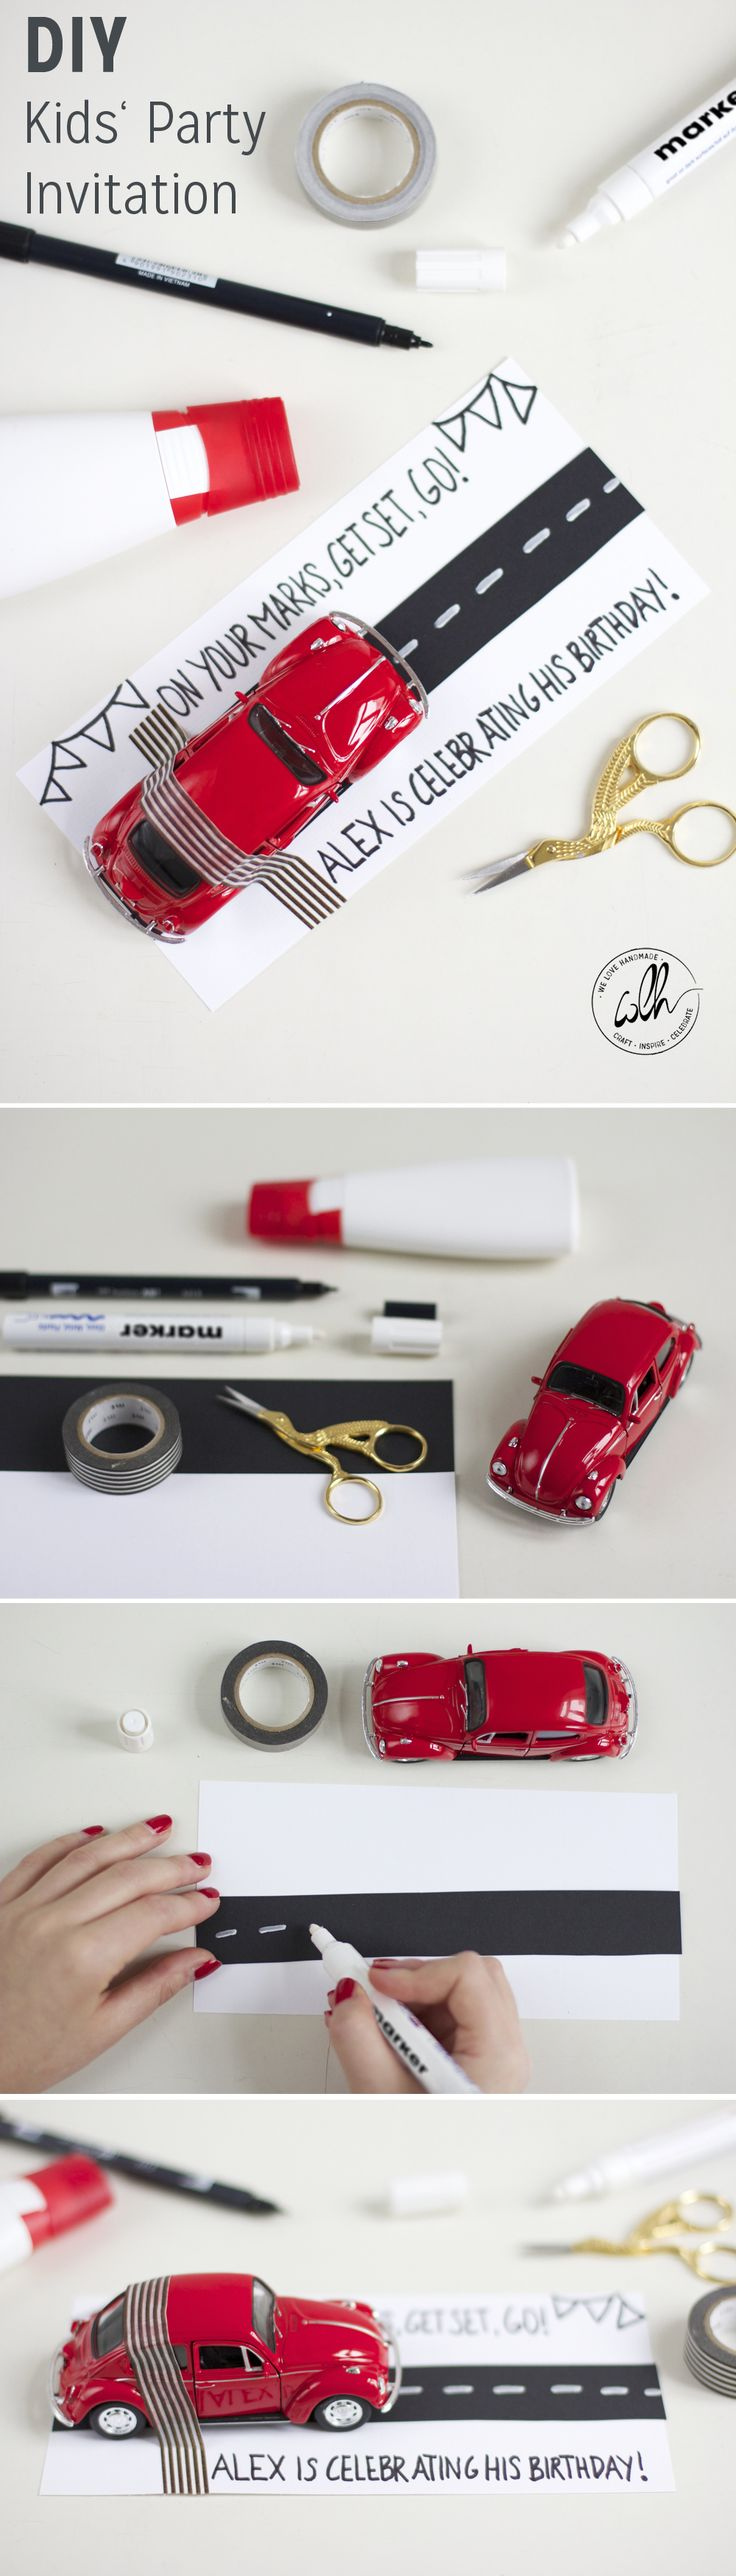 We love planning parties! How about a car racing birthday party? You'll find a DIY tutorial on how to make a party invitation at www.welovehandmade.at. For more awesome DIY ideas, check out the 'DIY Bloggers for Volkswagen' board: https://www.pinterest.com/volkswagen/diy-bloggers-for-volkswagen/